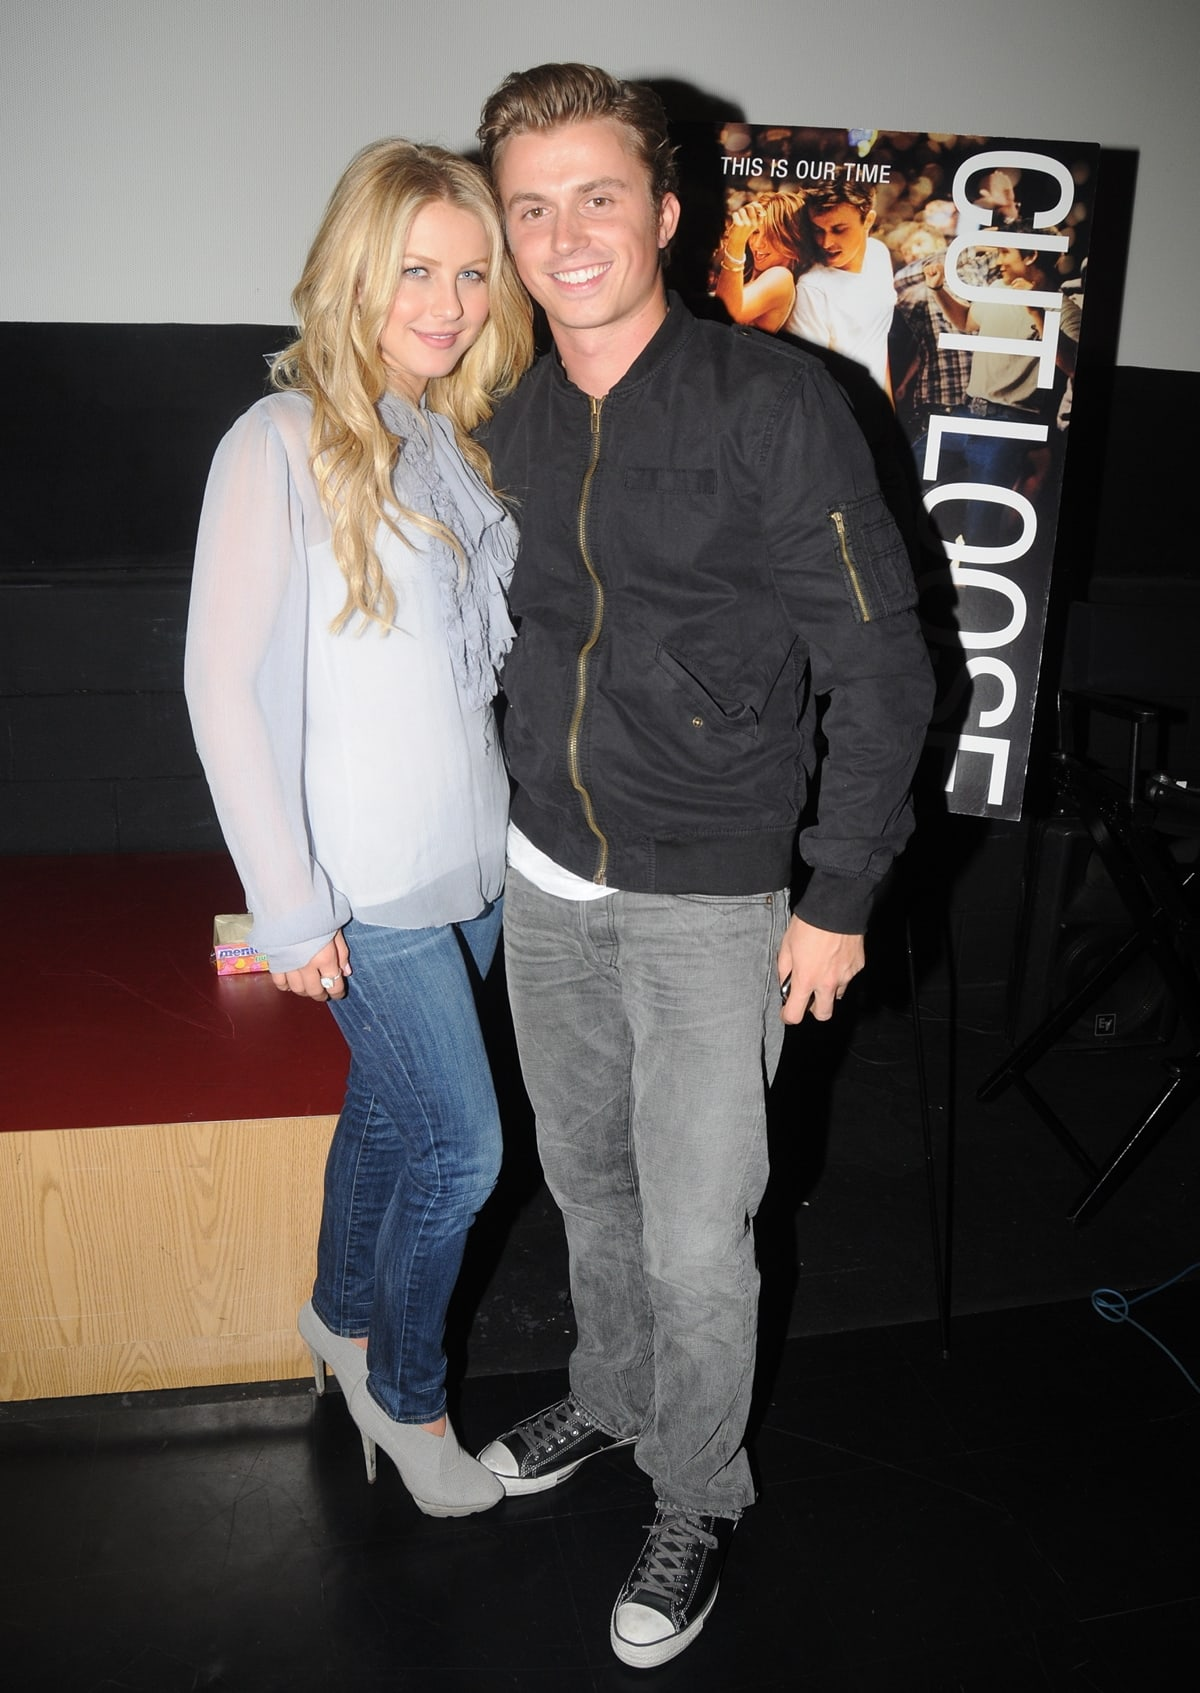 Julianne Hough and Kenny Wormald attend a 'Footloose' screening at the Ritz East Theater in Philadelphia